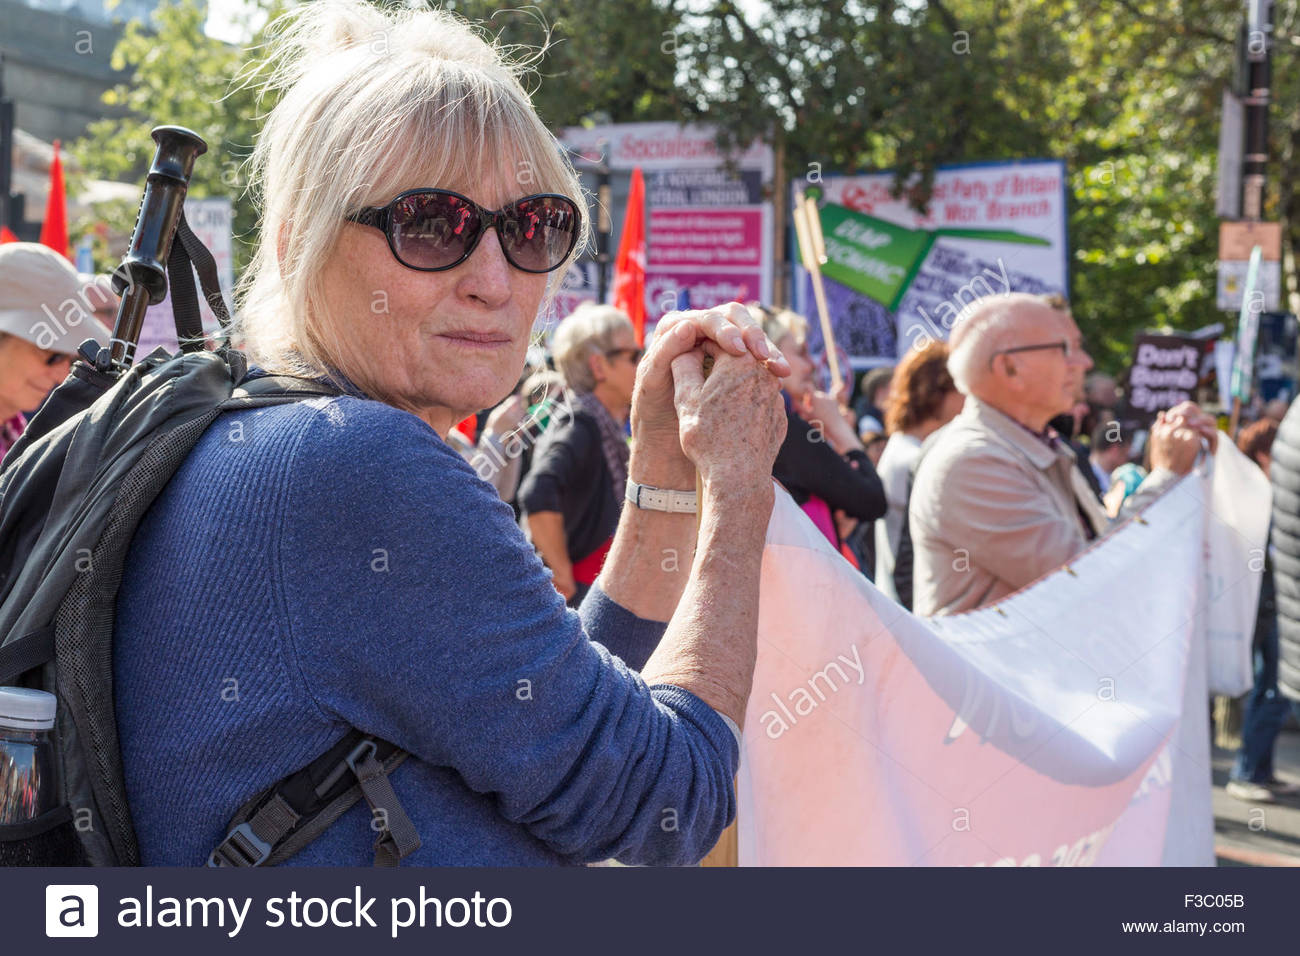 Manchester, UK. 4th October, 2015. Anti austerity rally in Manchester, UK. Meg McDonald, 73, from London, member - Stock Image